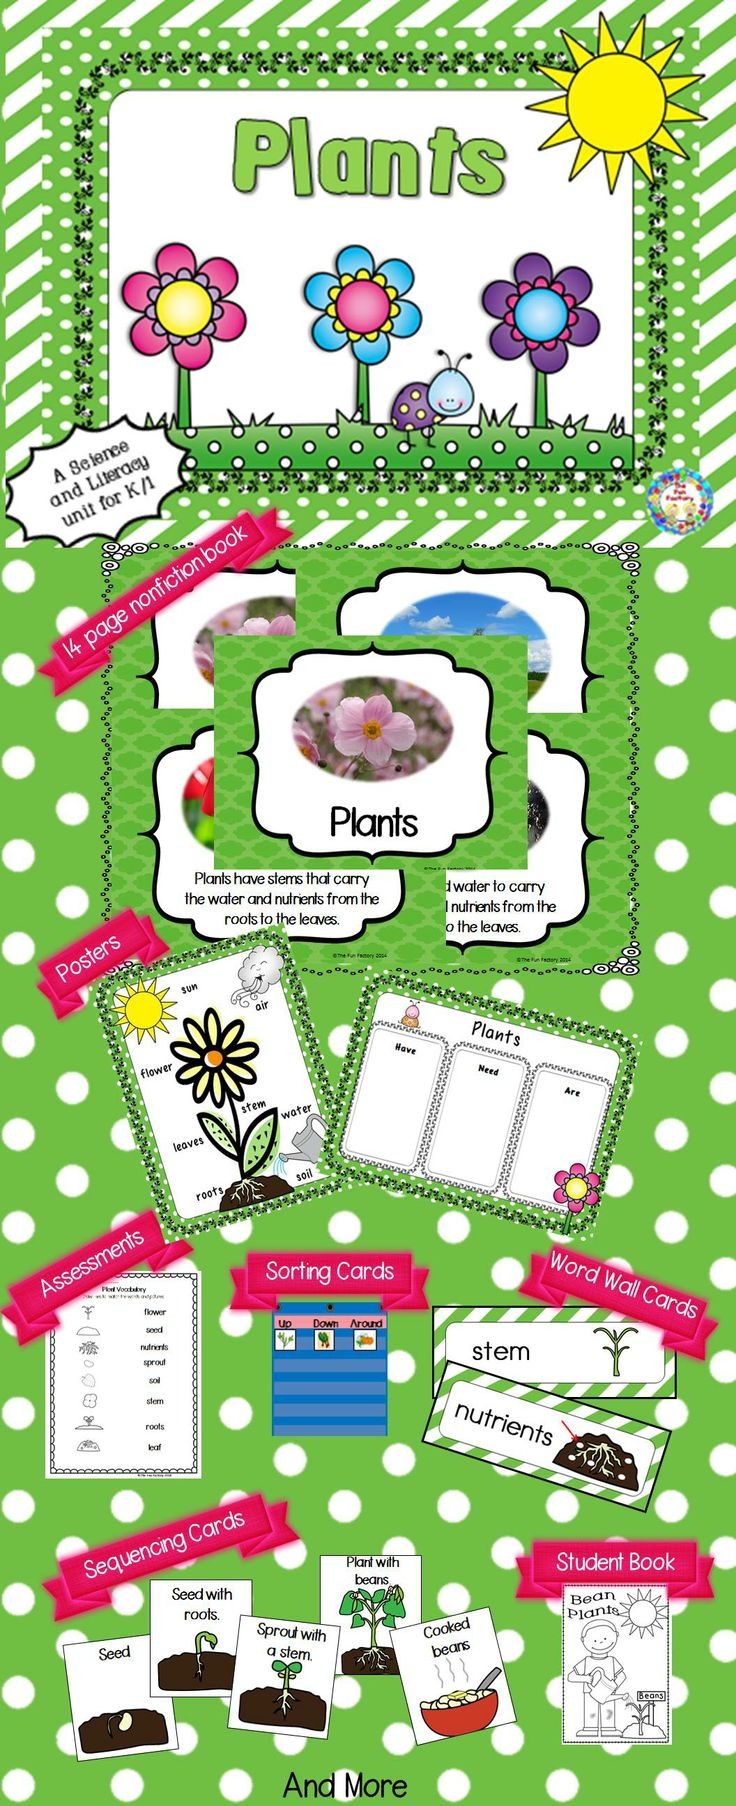 $ This unit contains: A poster of the parts of the plant Word Wall cards that can also be used in the writing center A 14 page nonfiction book about plants Picture cards to sort at the pocket chart center by which way the edible part of a plant grows and a response sheet An 11 page read aloud about the life cycle of a bean plant A life cycle poster Picture cards to sequence the life cycle An 11 page student book to write about the life cycle 2 Assessment sheets